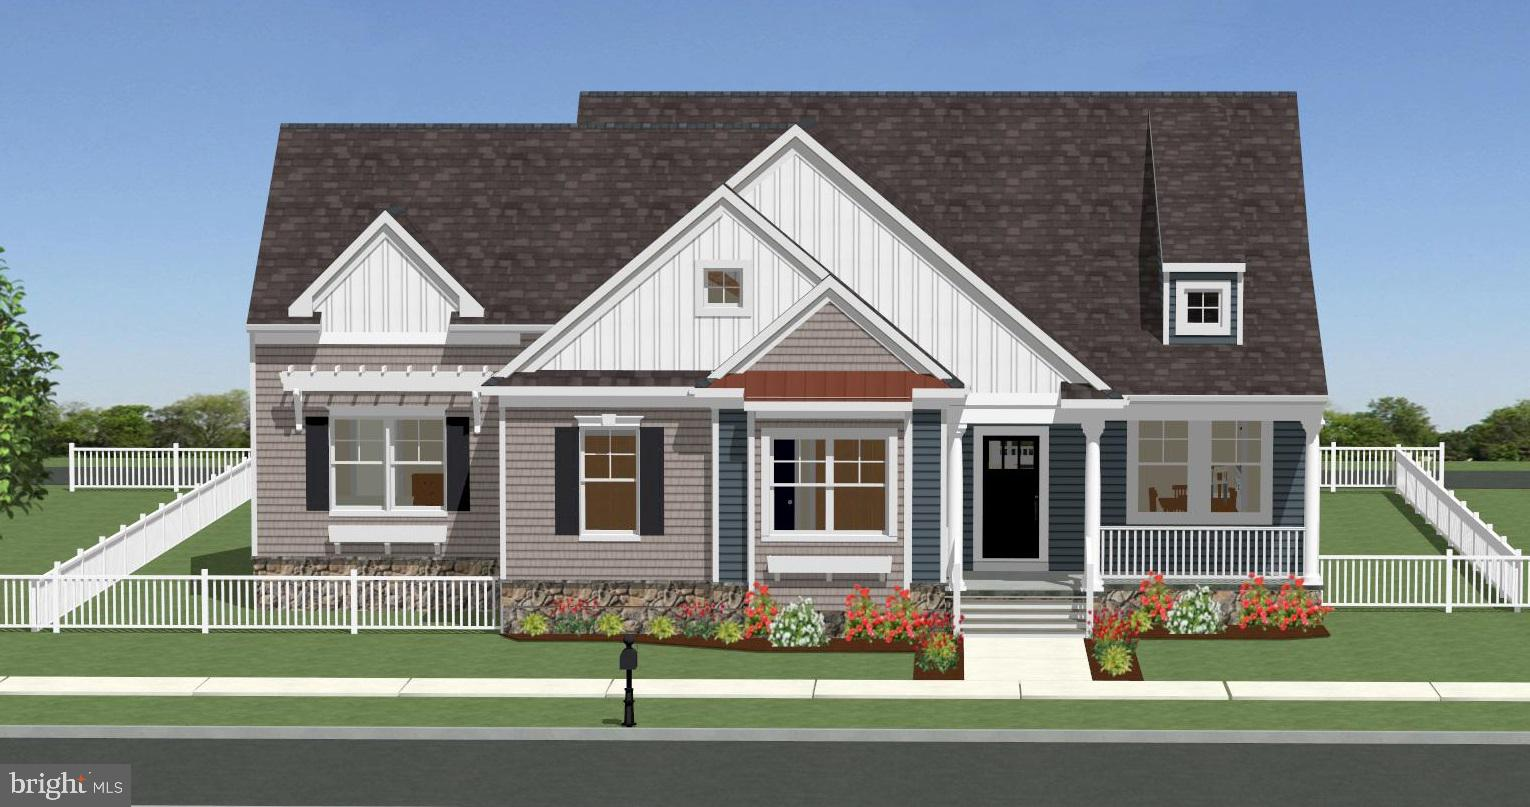 Lifestyle's Brittany Model.  One-floor living.  Open floorplan.  Attached and Detached garage.  Lifestyle homes makes modifications to floorplans to suit buyers needs.  Model at 501 Spring Hollow Open daily or by appointment.  Appraisers call for etails.